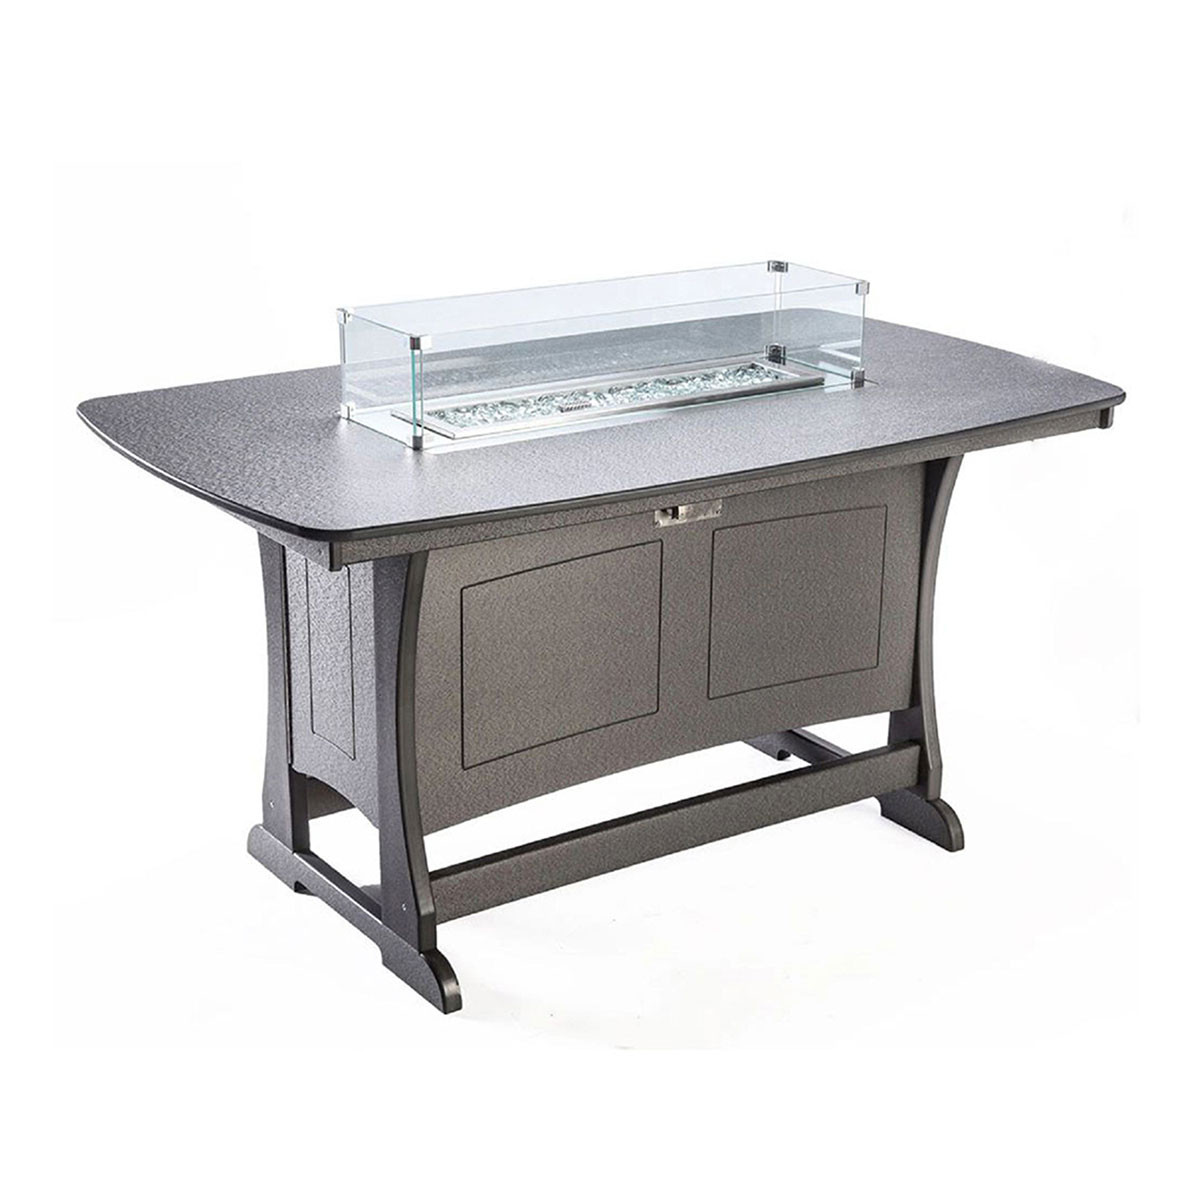 Perfect Choice Classic 72 in Counter Height Fire Table